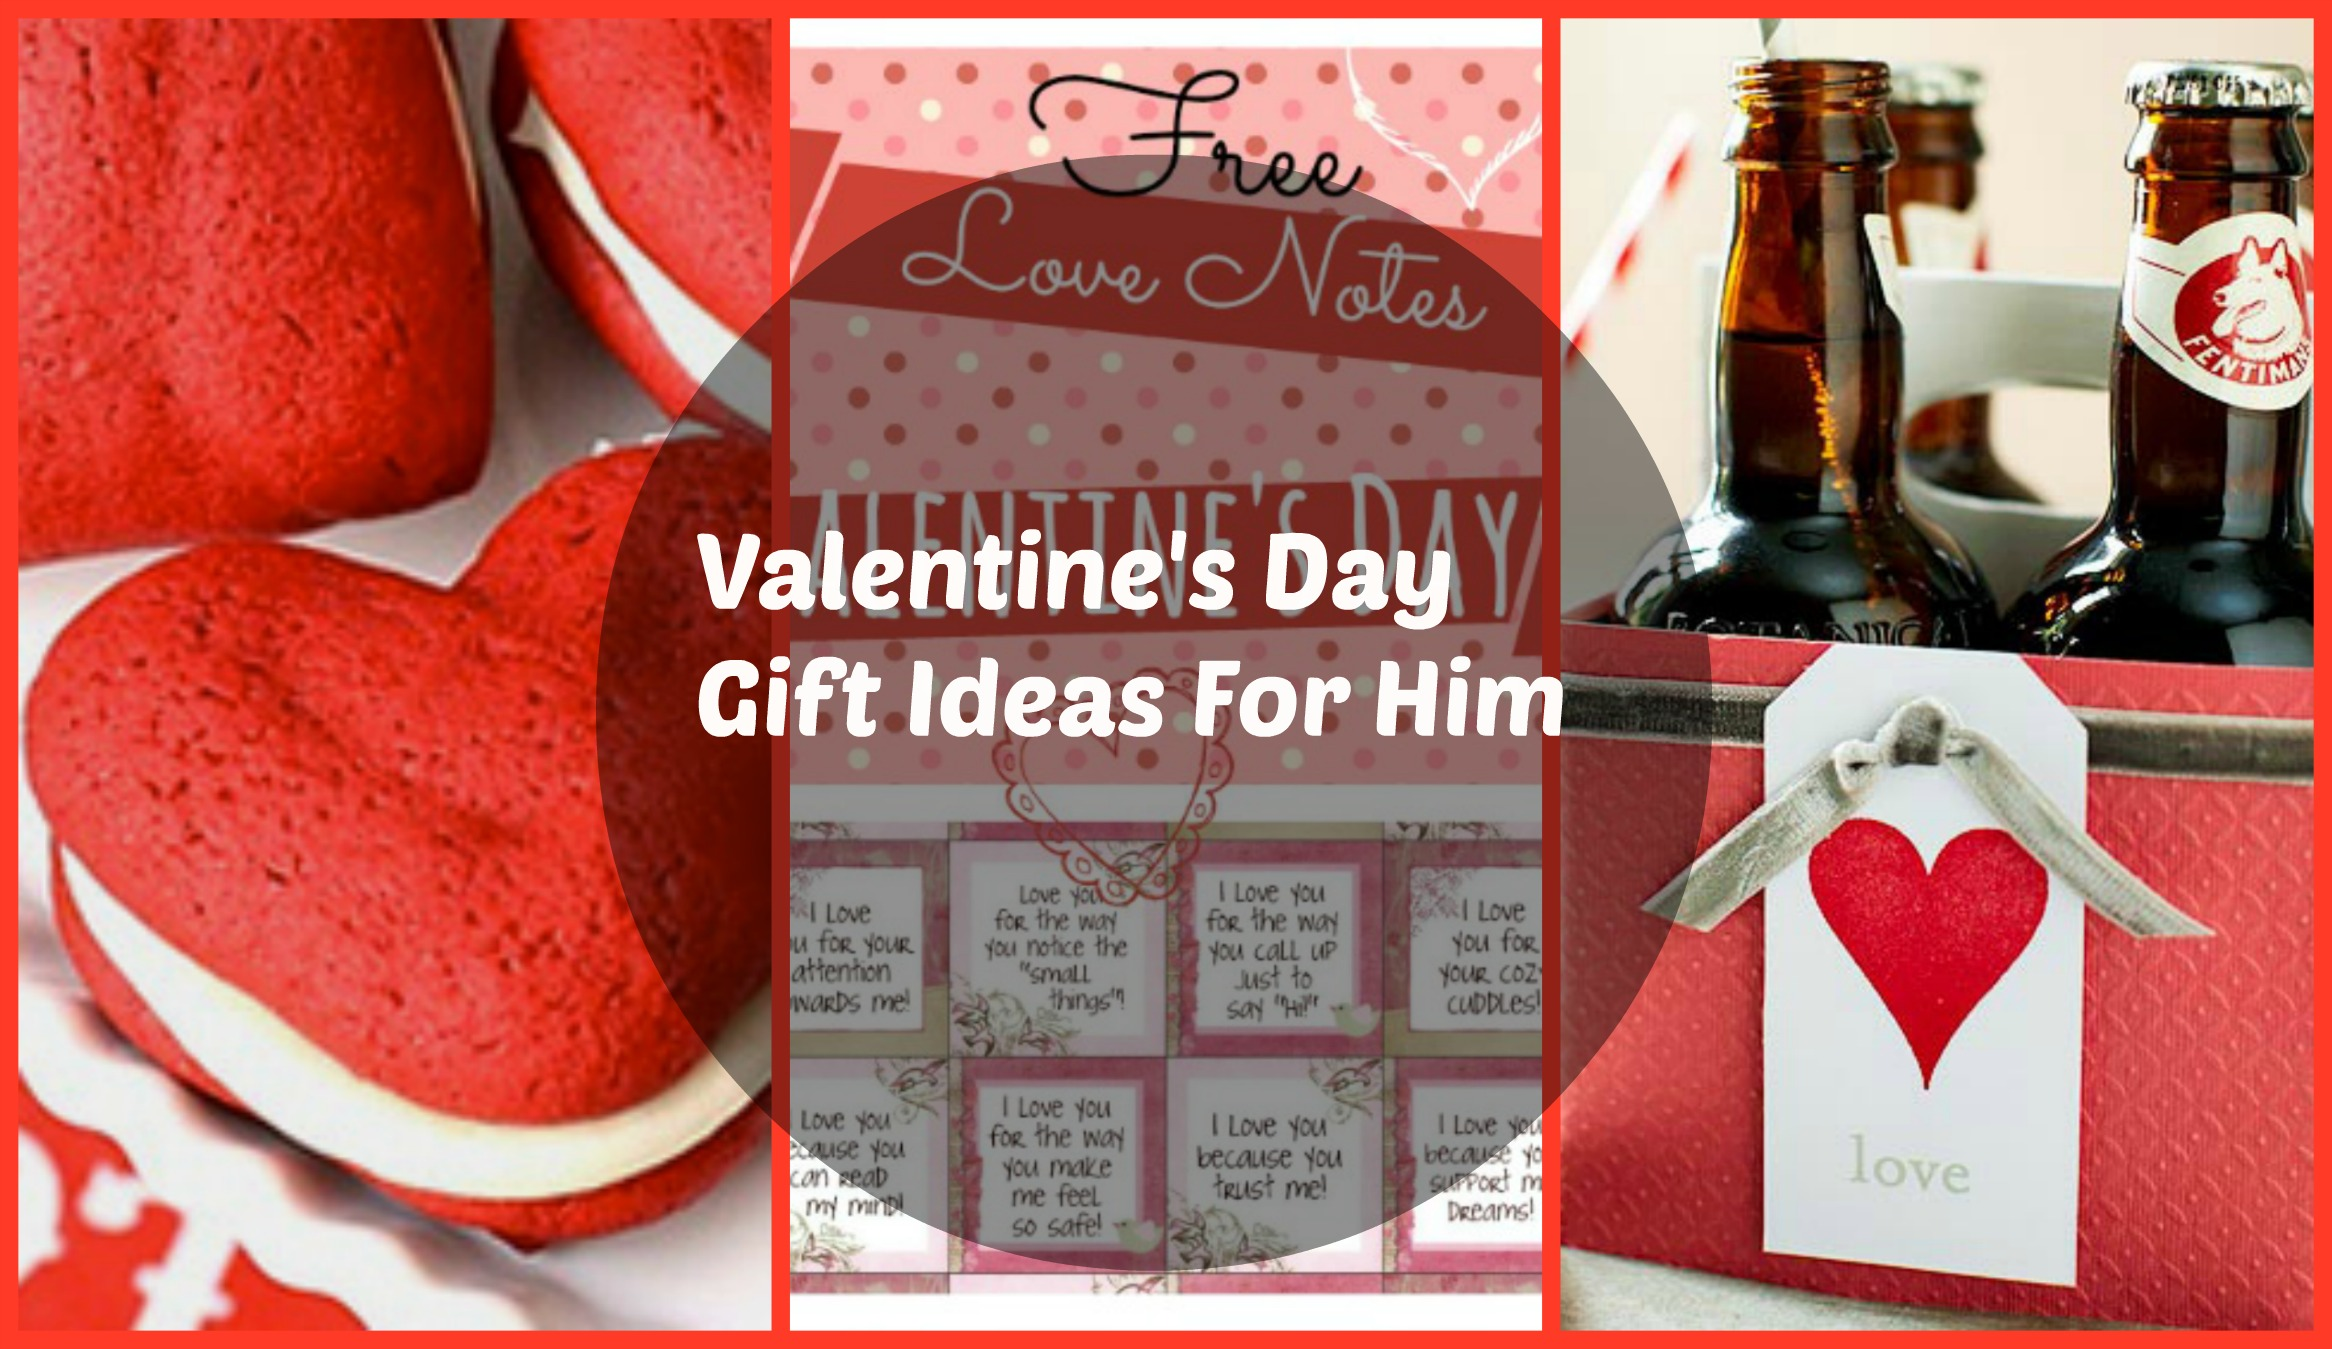 Valentine 39 S Gift Ideas For Him Archives Fashion Trend Seeker